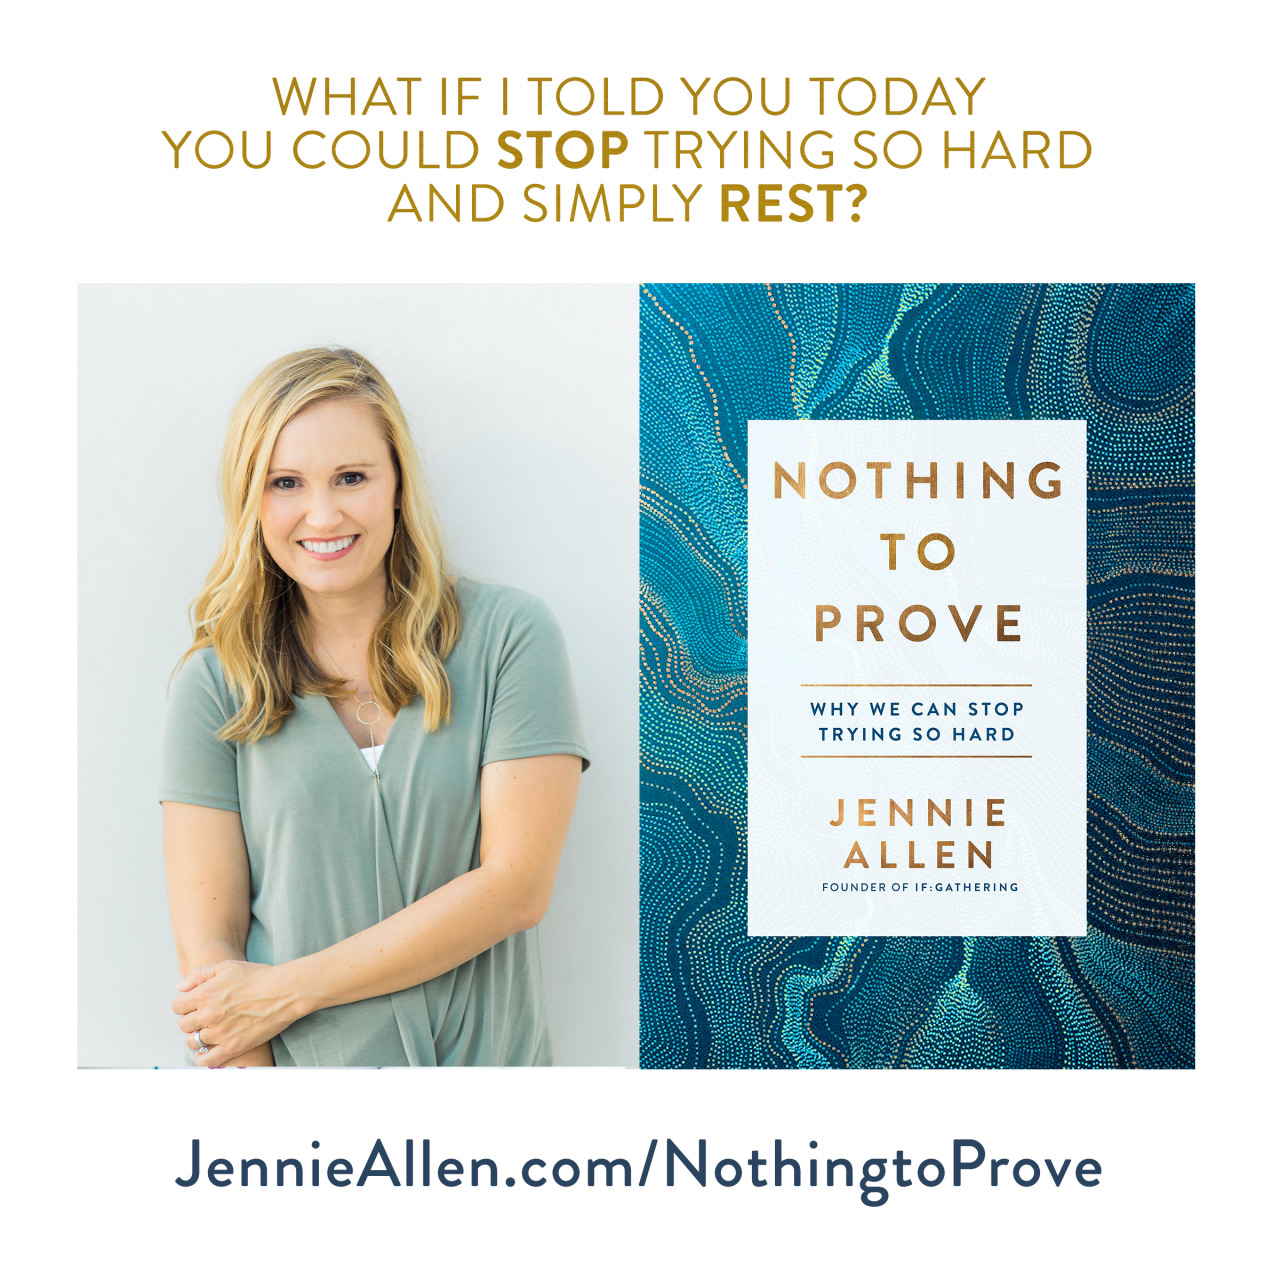 Stop trying so hard and simply rest - Jennie Allen | Nothing to Prove